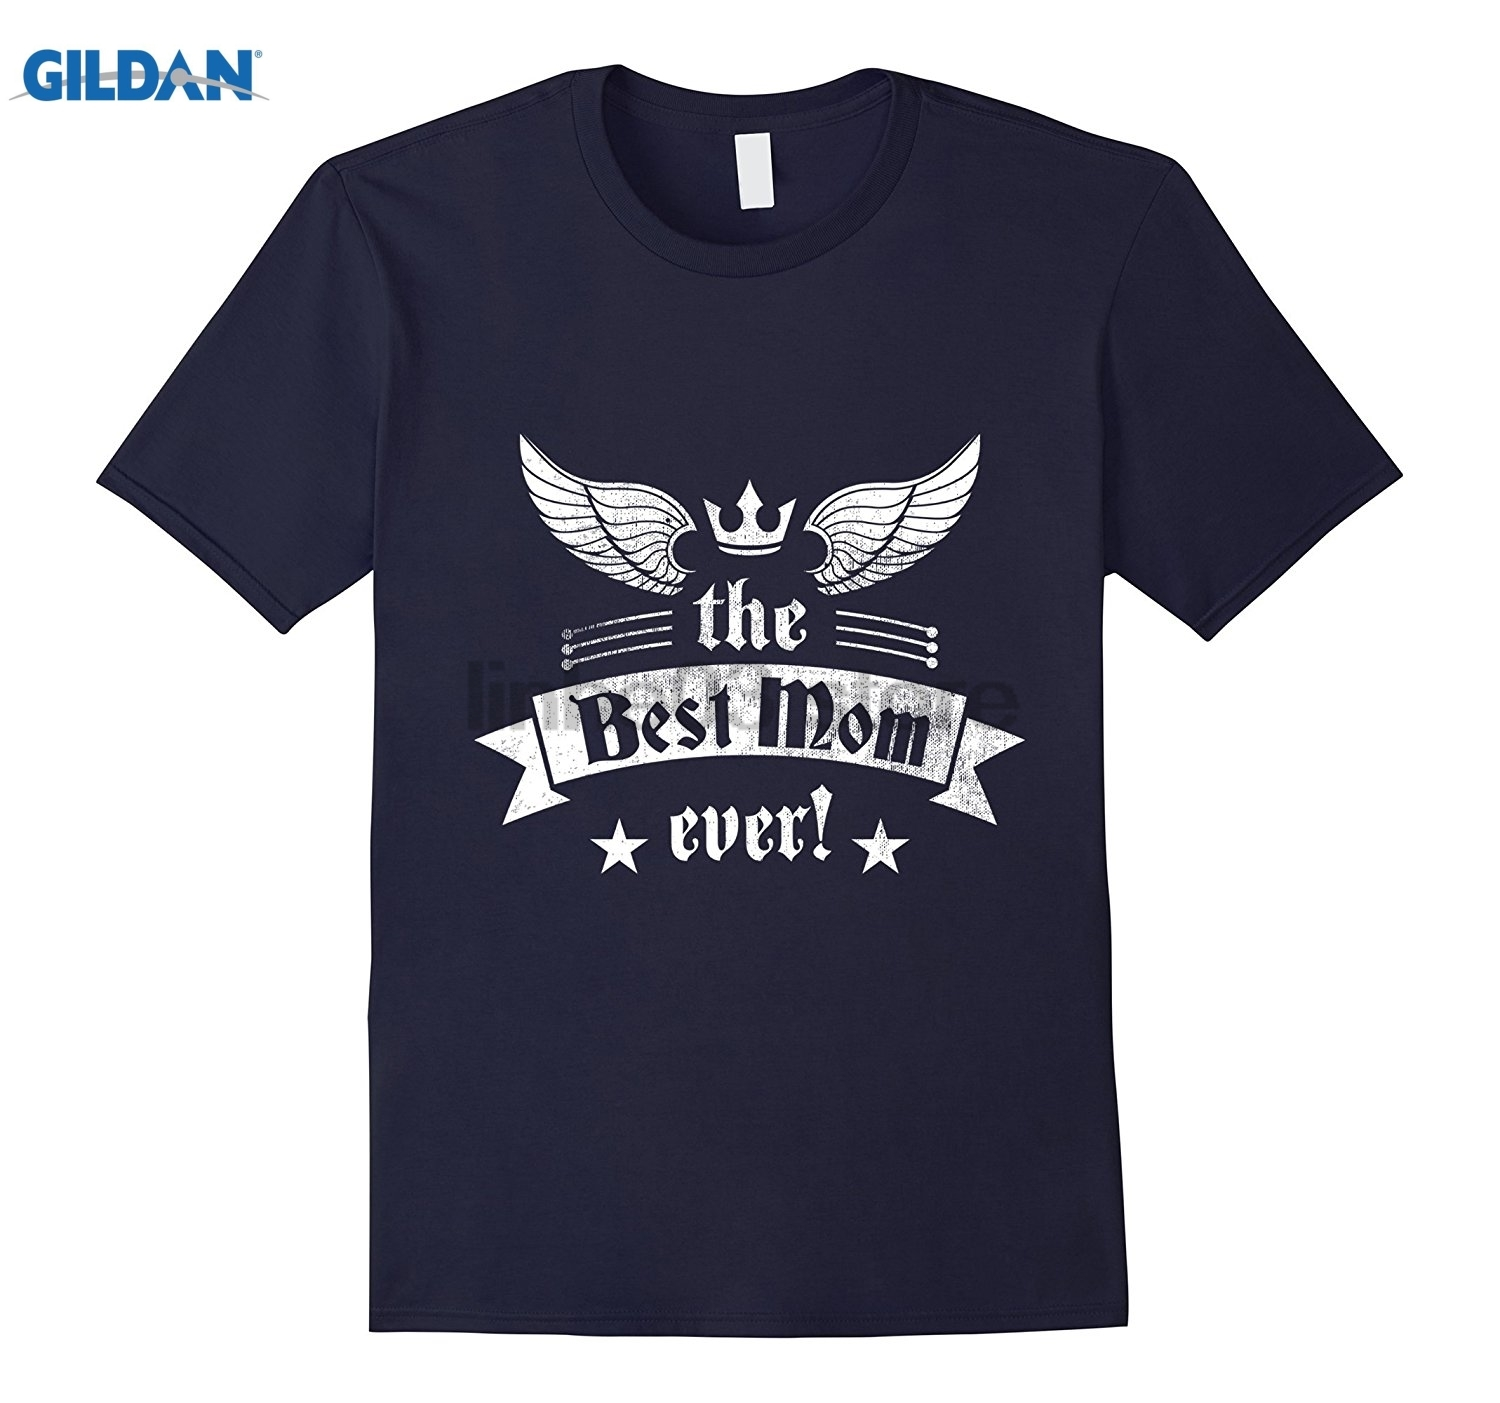 GILDAN Mothers Day 2017 Best Mom Ever T-shirt Gift Tee For Mama Womens T-shirt Mothers Day Ms. T-shirt